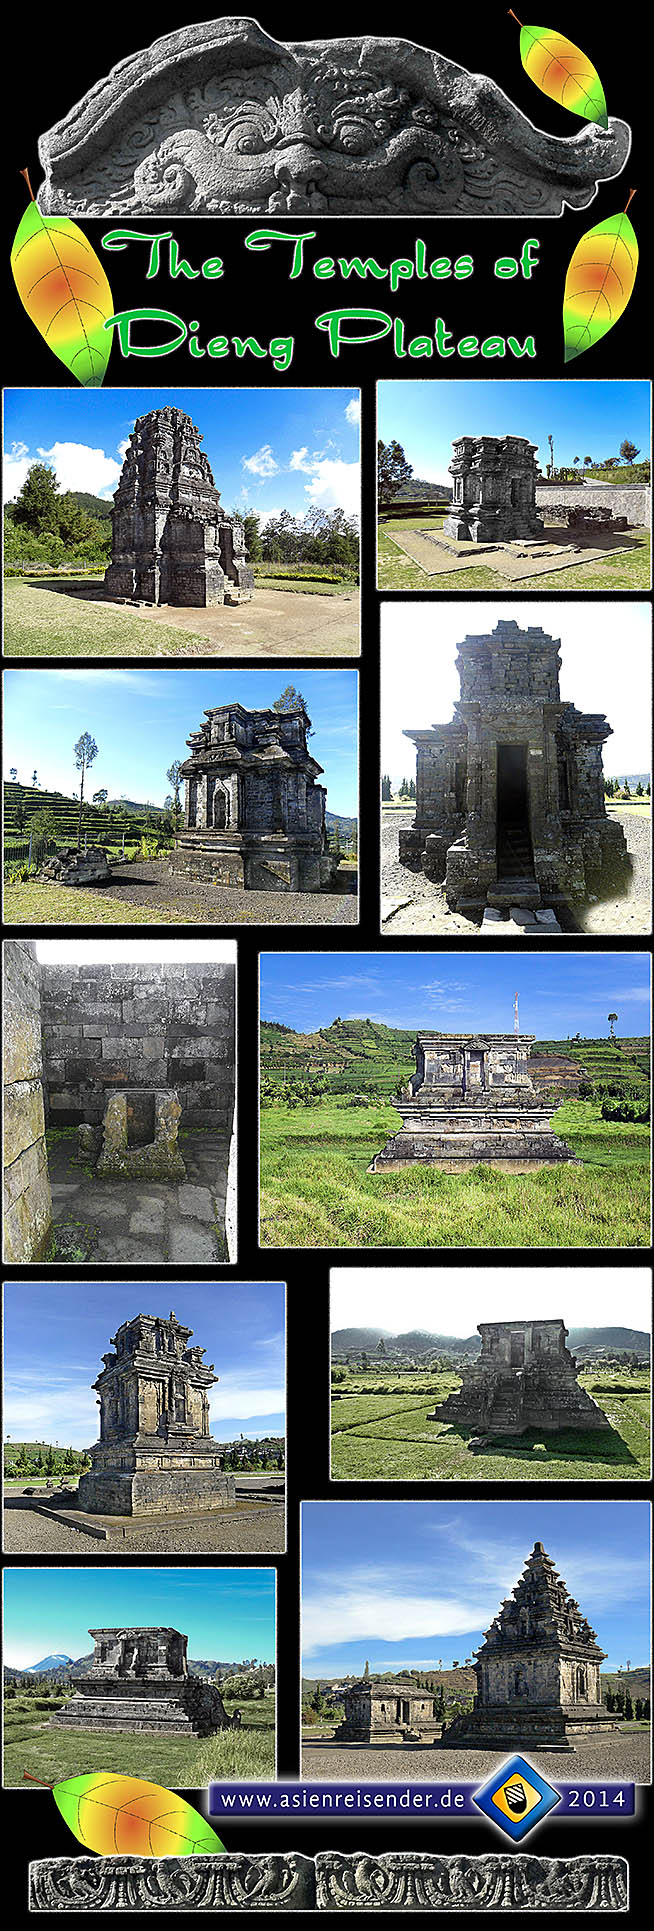 'The Monuments of Dieng Plateau' by Asienreisender